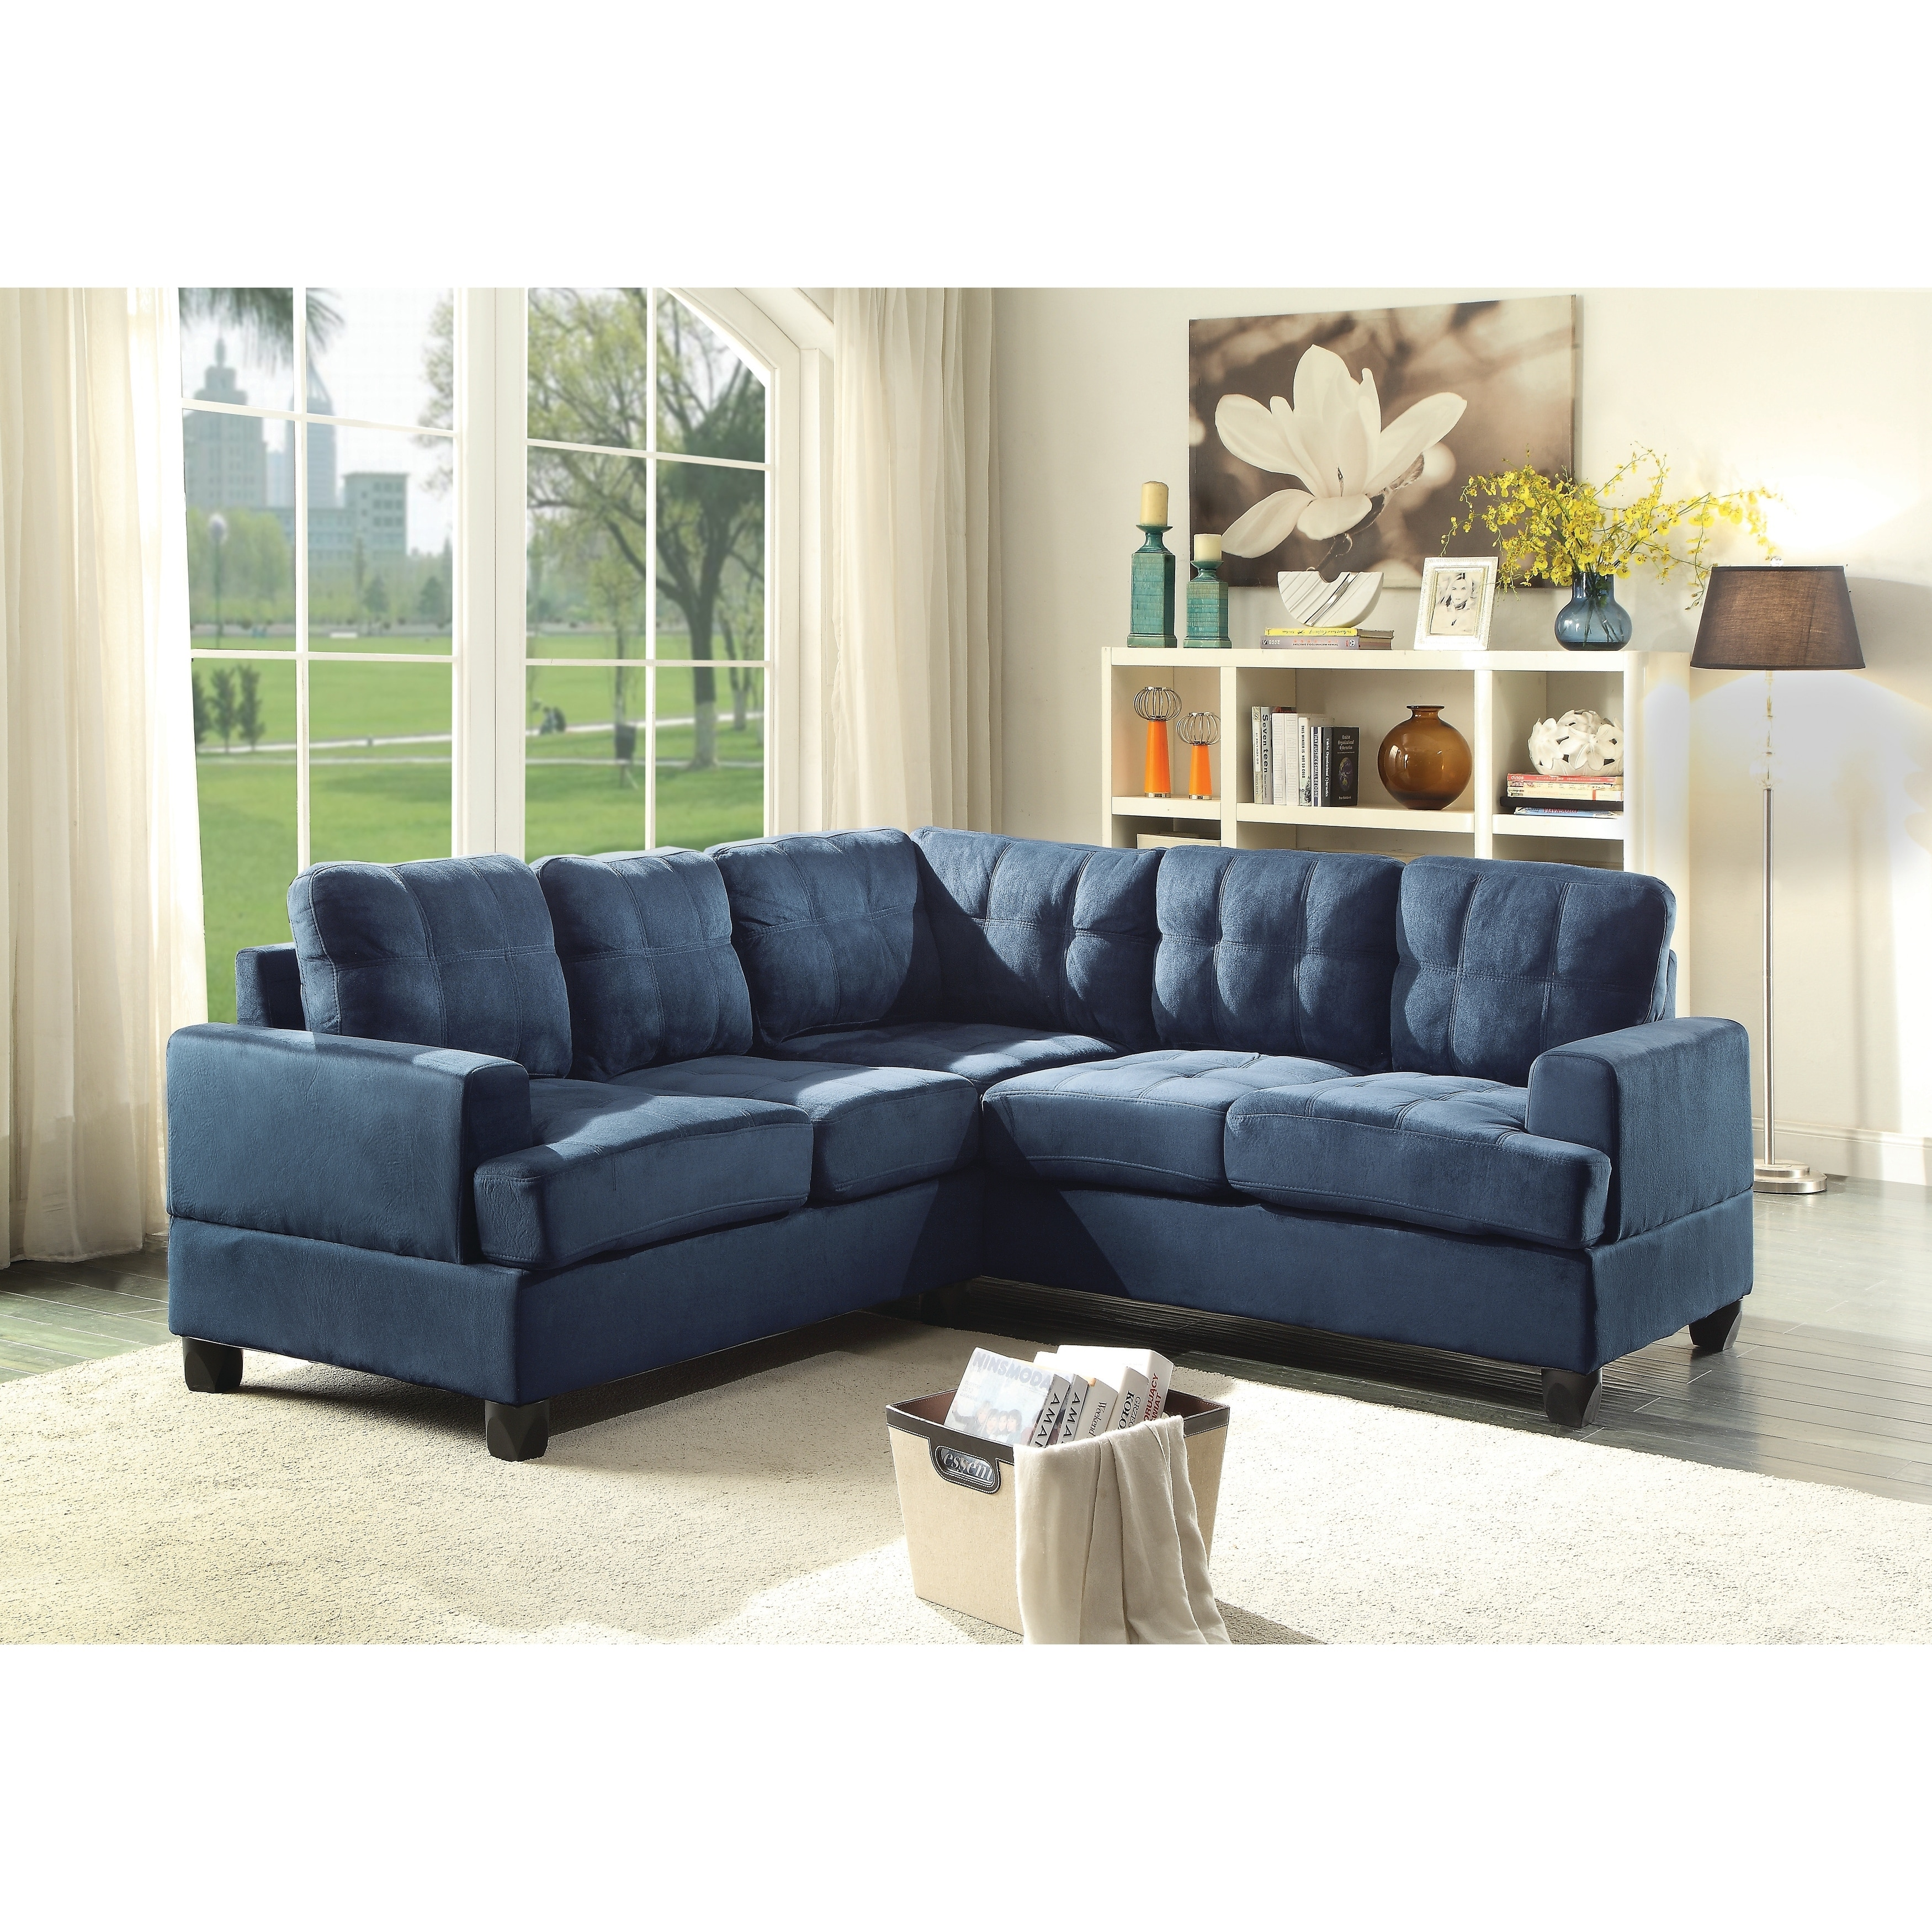 LYKE Home Contemporary Tufted Suede Sectional Sofa | eBay